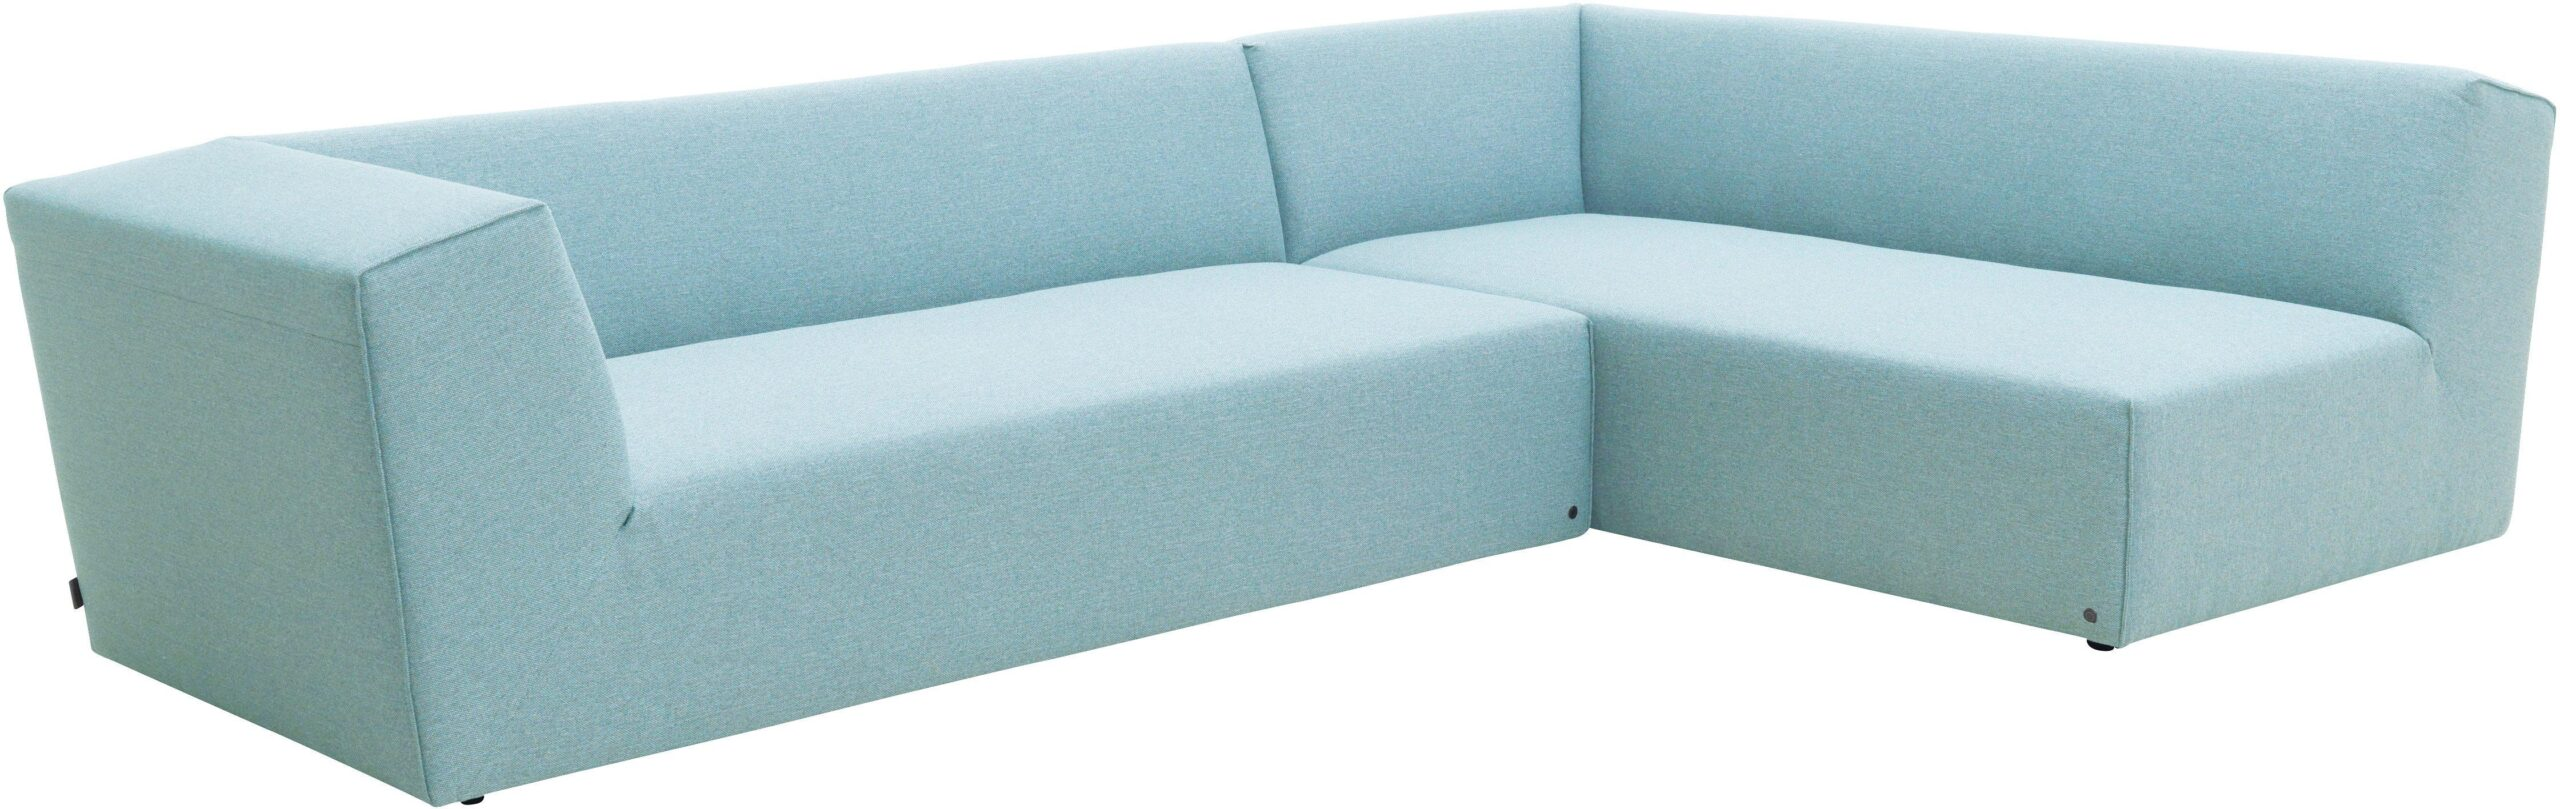 Full Size of Tom Tailor Sofa West Coast Elements Heaven Style Colors Nordic Chic Pure Otto Couch Xl S Big Cube Casual Ecksofa Auf Rechnung Kaufen Baur Bezug Mit Ottomane 2 Sofa Sofa Tom Tailor